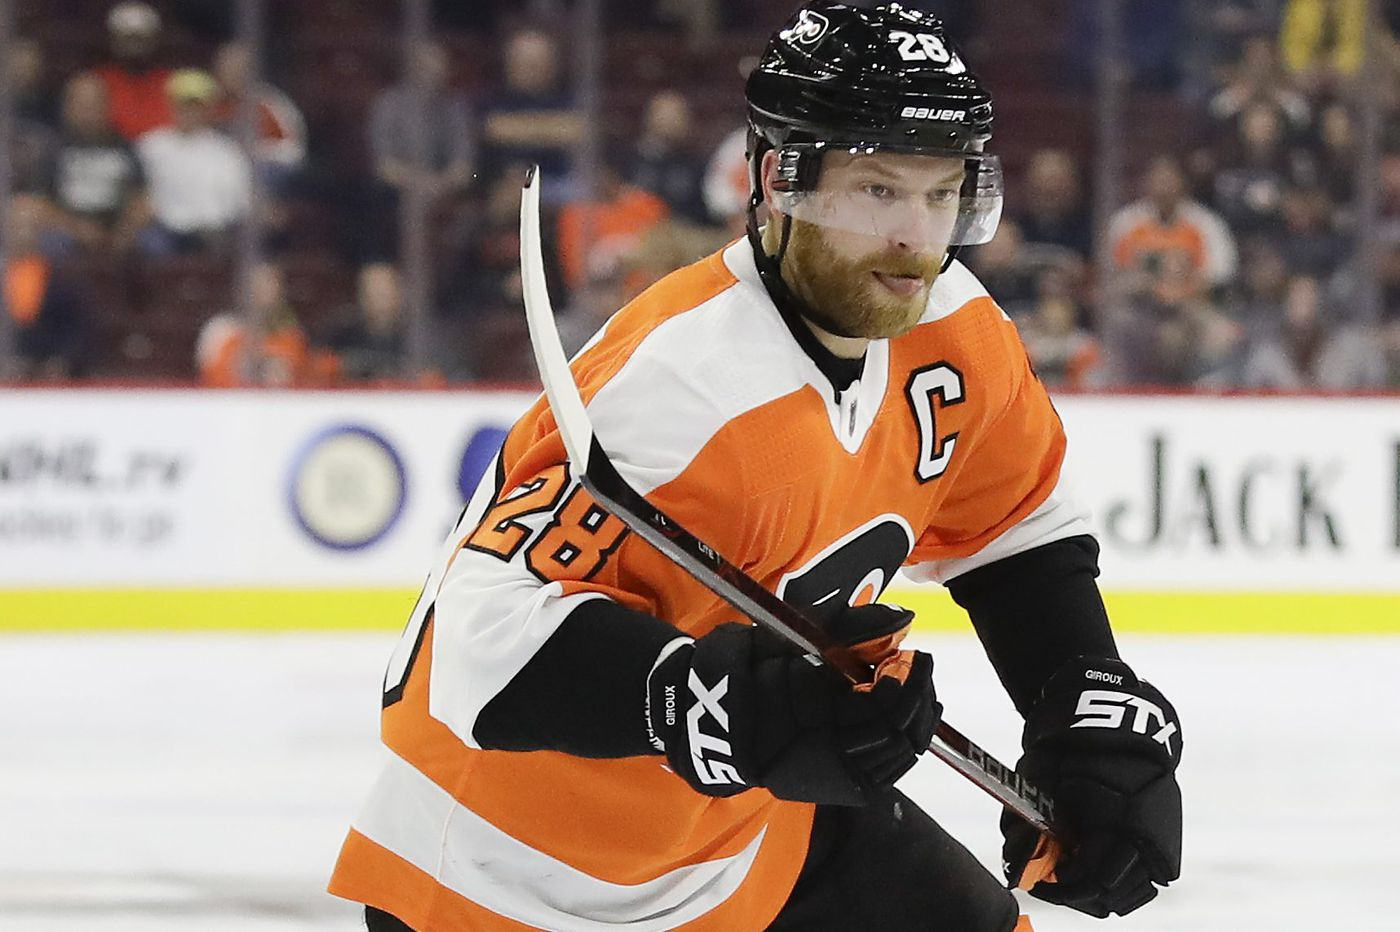 Flyers position preview: Left wing now a strength with Claude Giroux, James van Riemsdyk, others